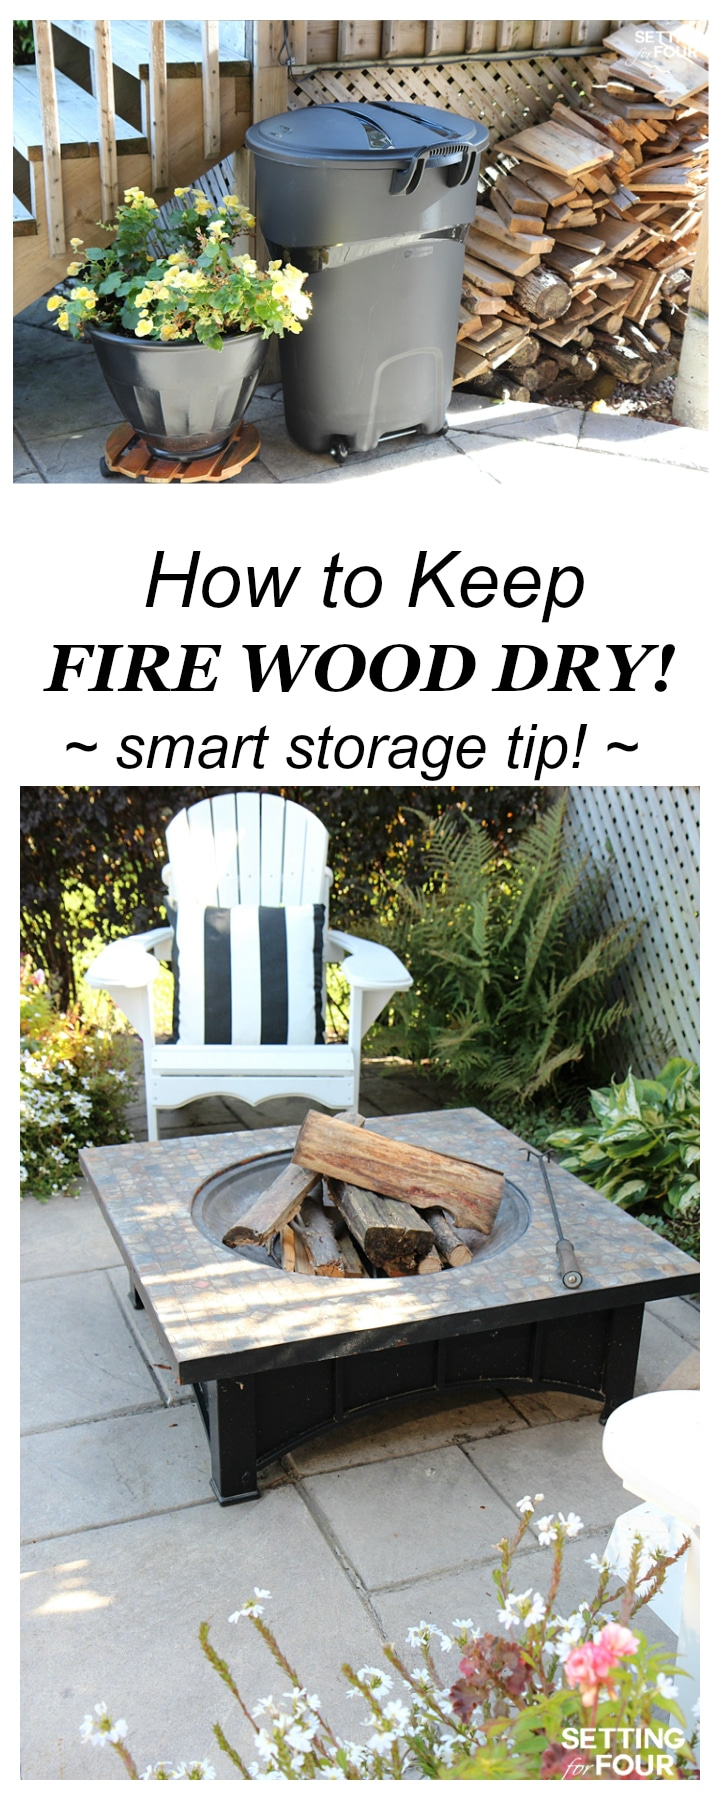 How to keep fire wood dry! Smart storage tip! This is a helpful fire wood storage idea if you have a fire pit, wood burning fireplace or wood stove too! www.settingforfour.com